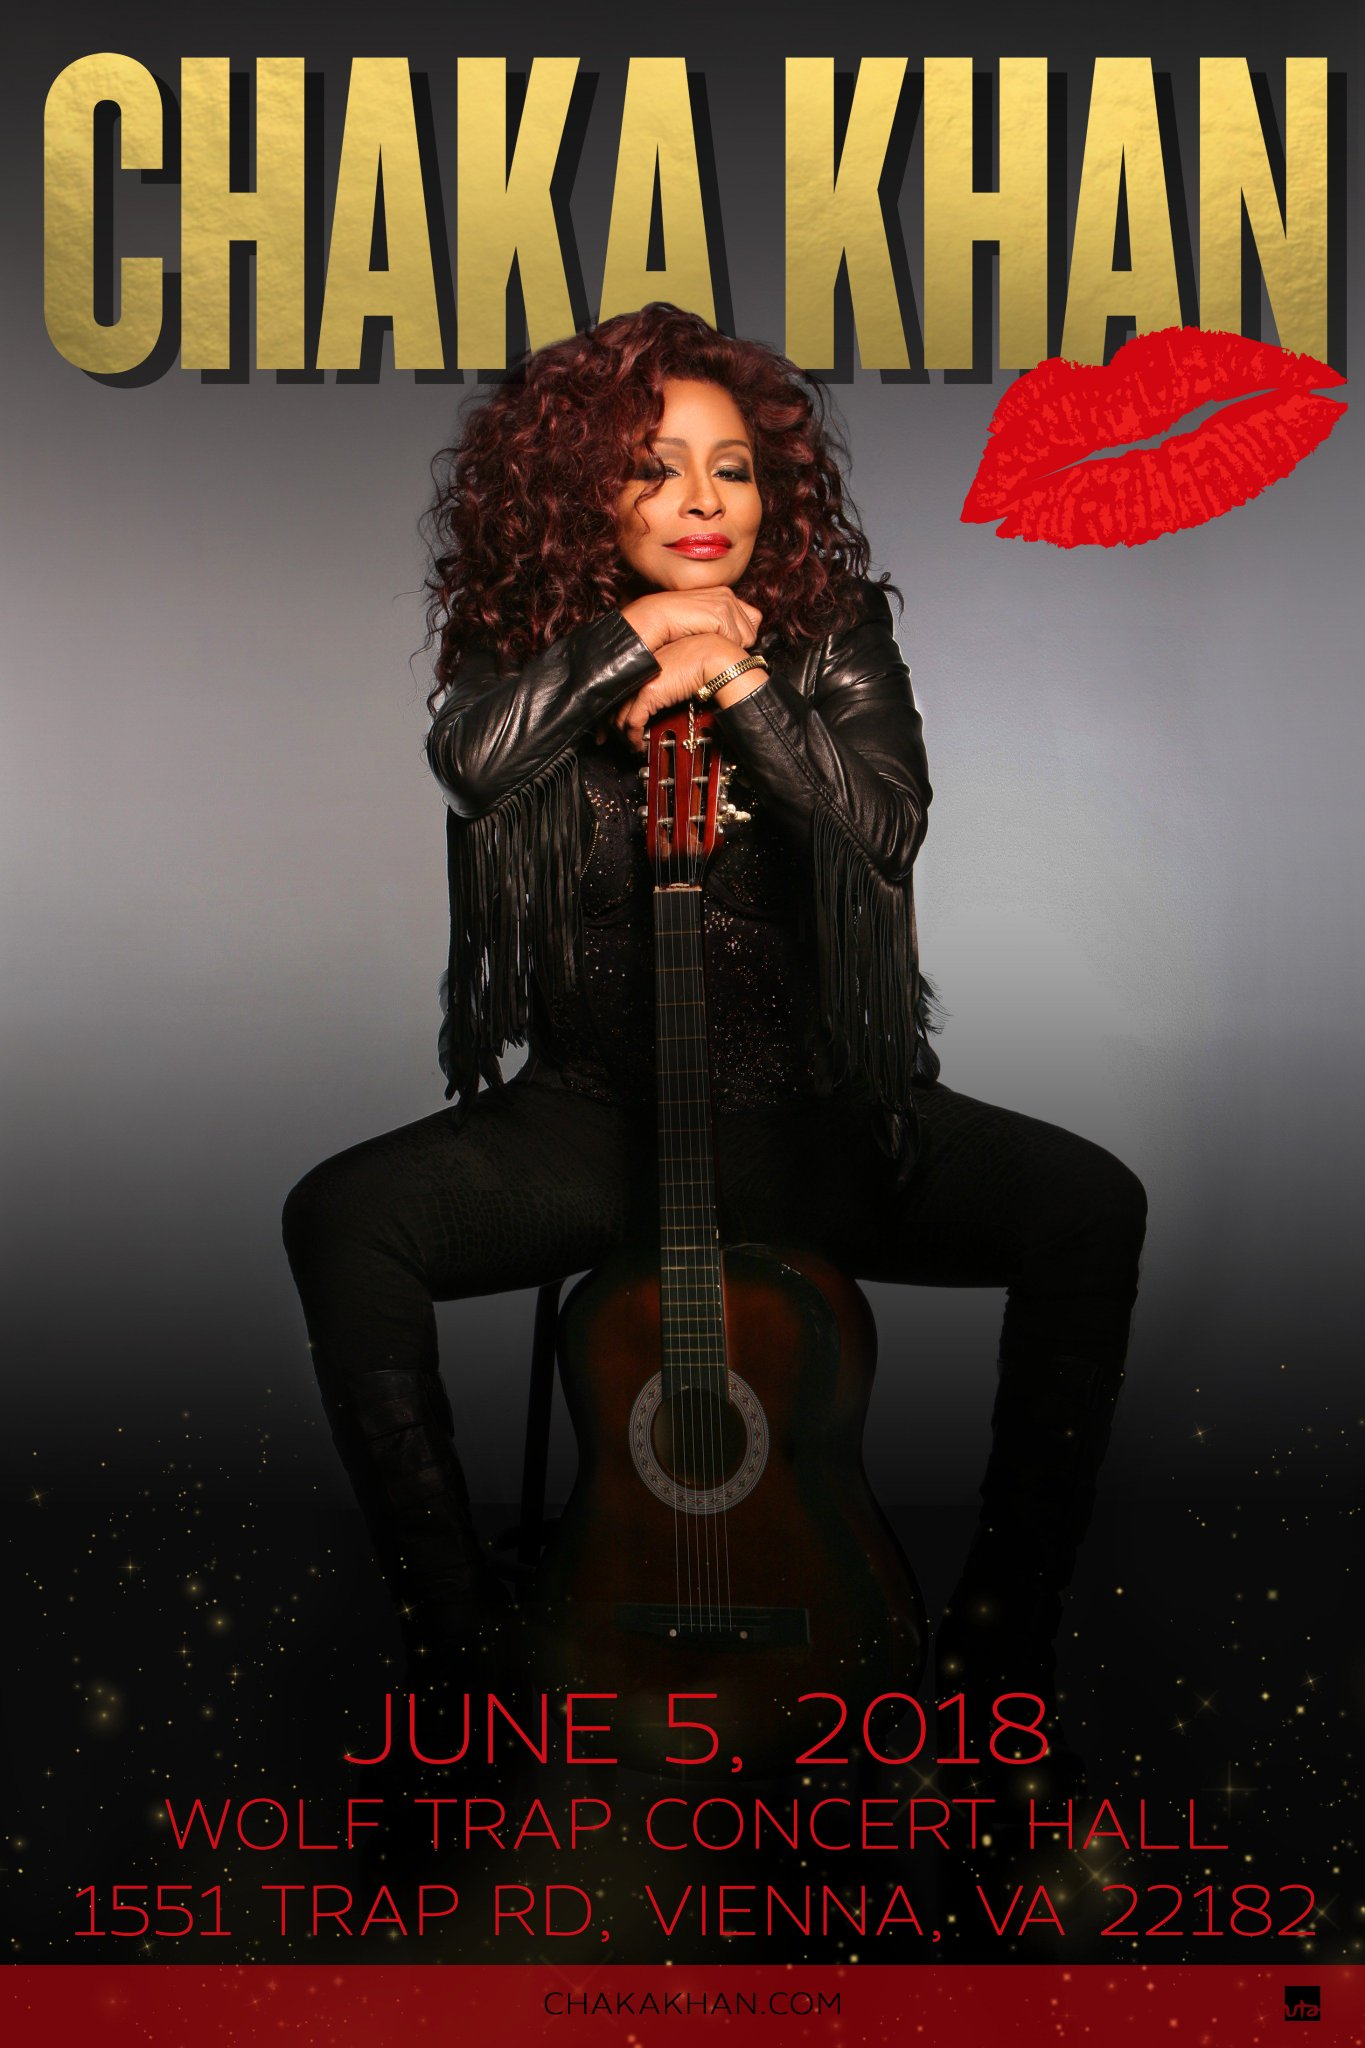 Reloaded twaddle – RT @ChakaKhan: CHAKA KHAN + NILE RODGERS & CHIC at Wolf Trap Concert Hall on...